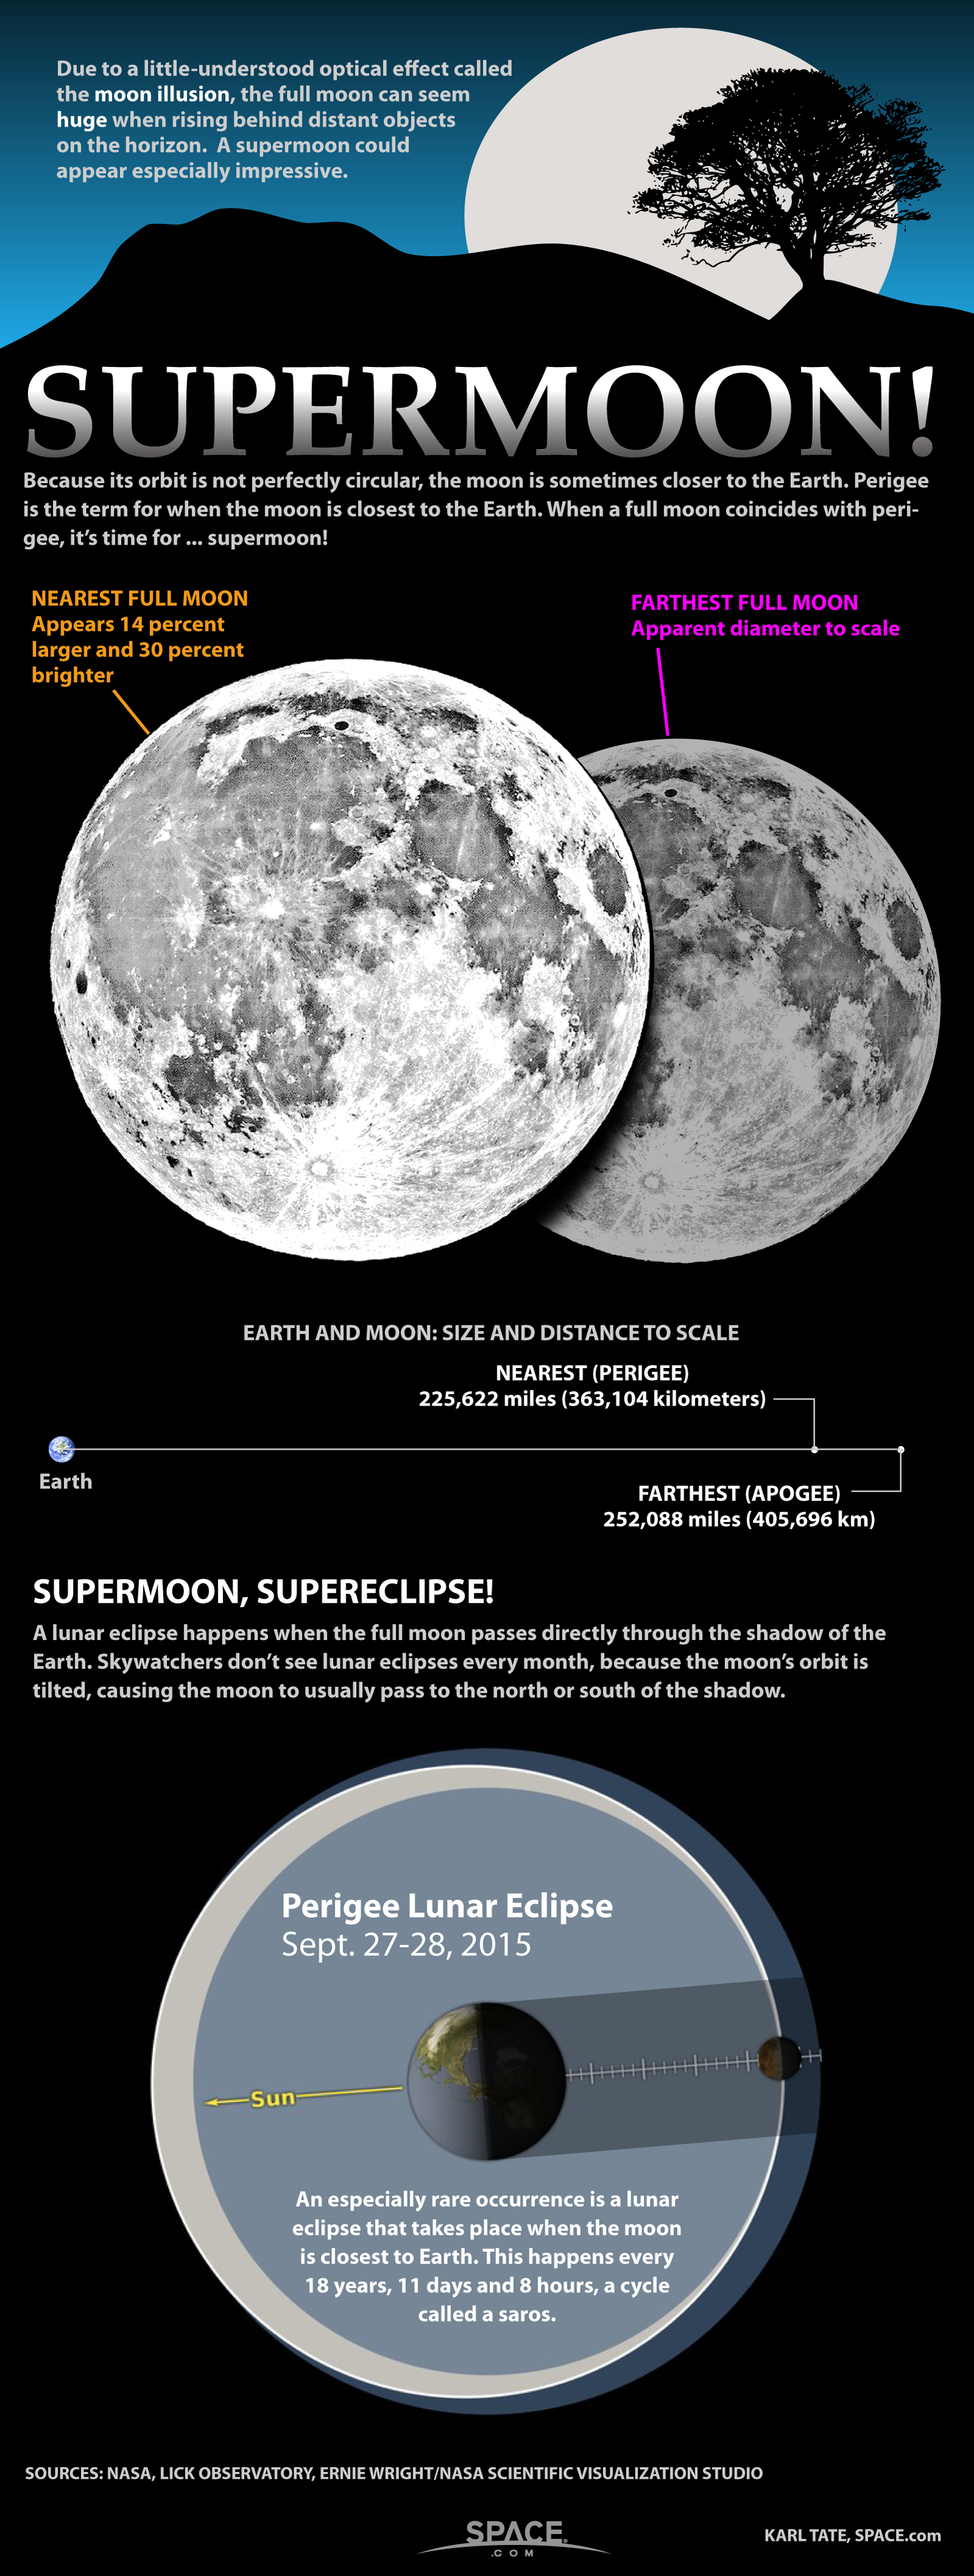 How the 'Supermoon' Looks (Infographic)